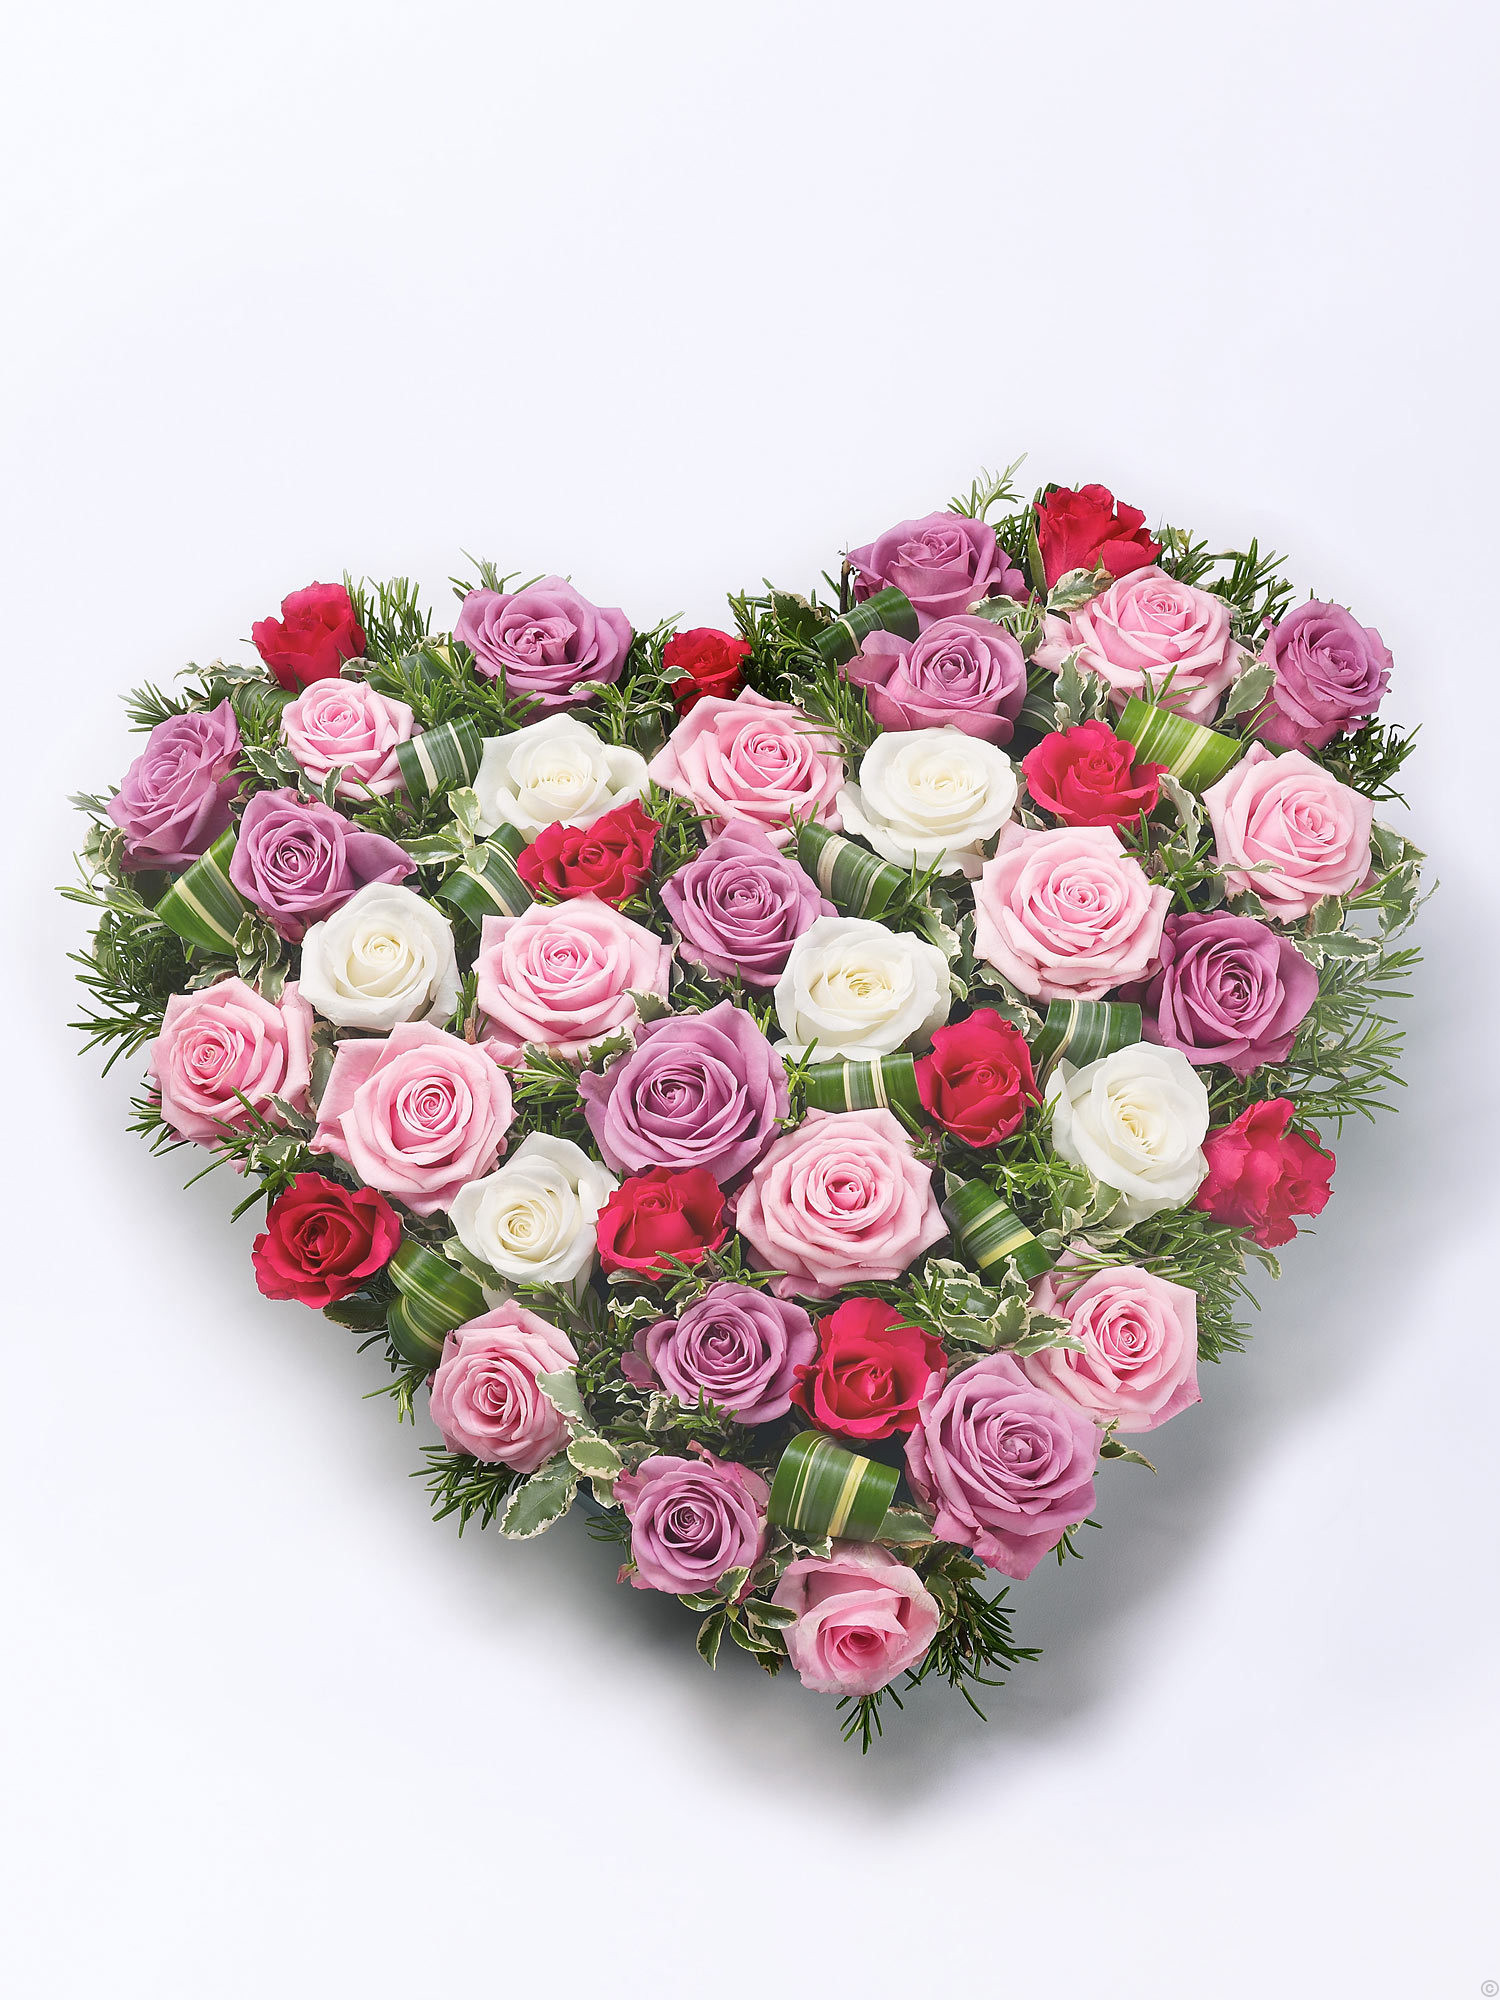 Mixed Rose Heart Red Pink From Flowersie